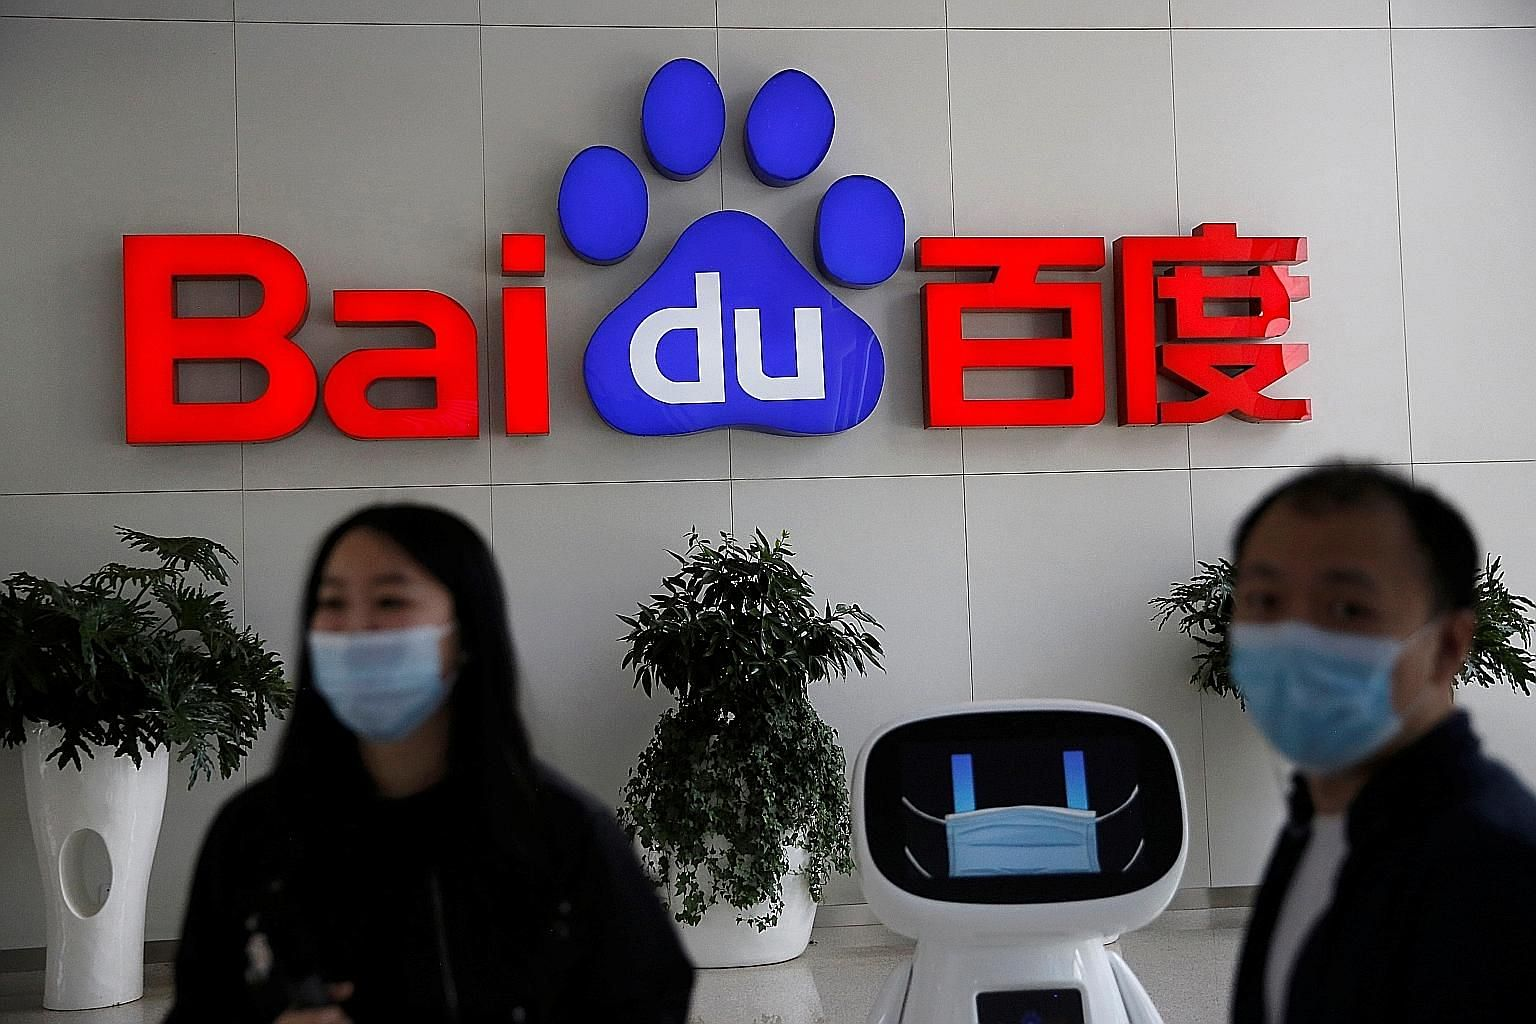 Beijing-based Baidu is behind China's largest search engine, with a domestic market share of about 70 per cent.